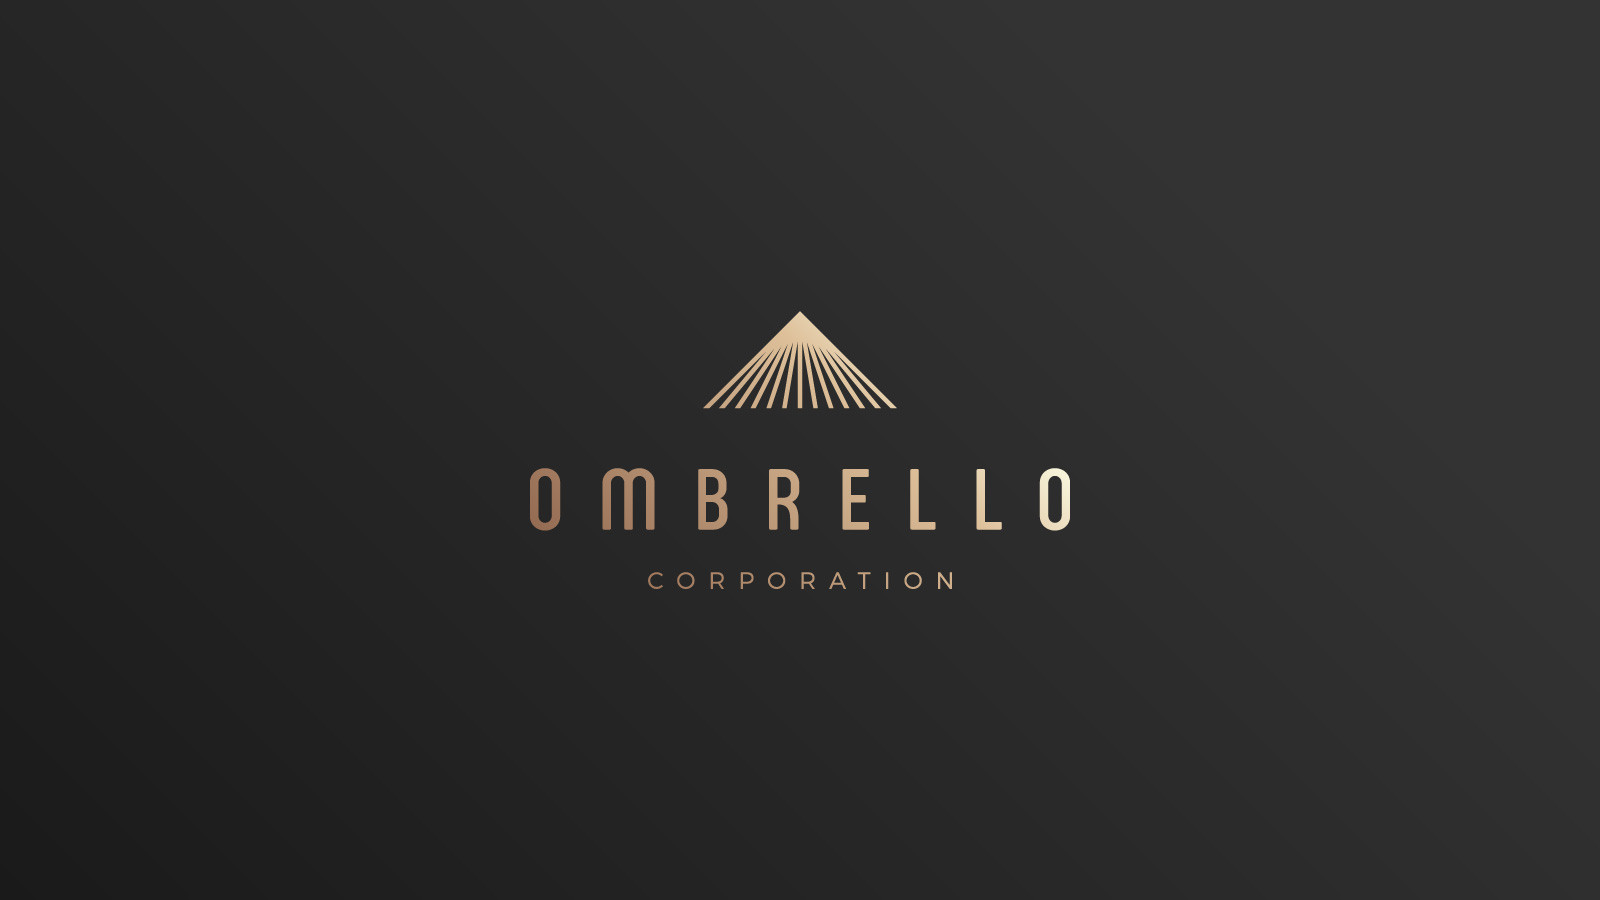 ombrello corporation - logotipo